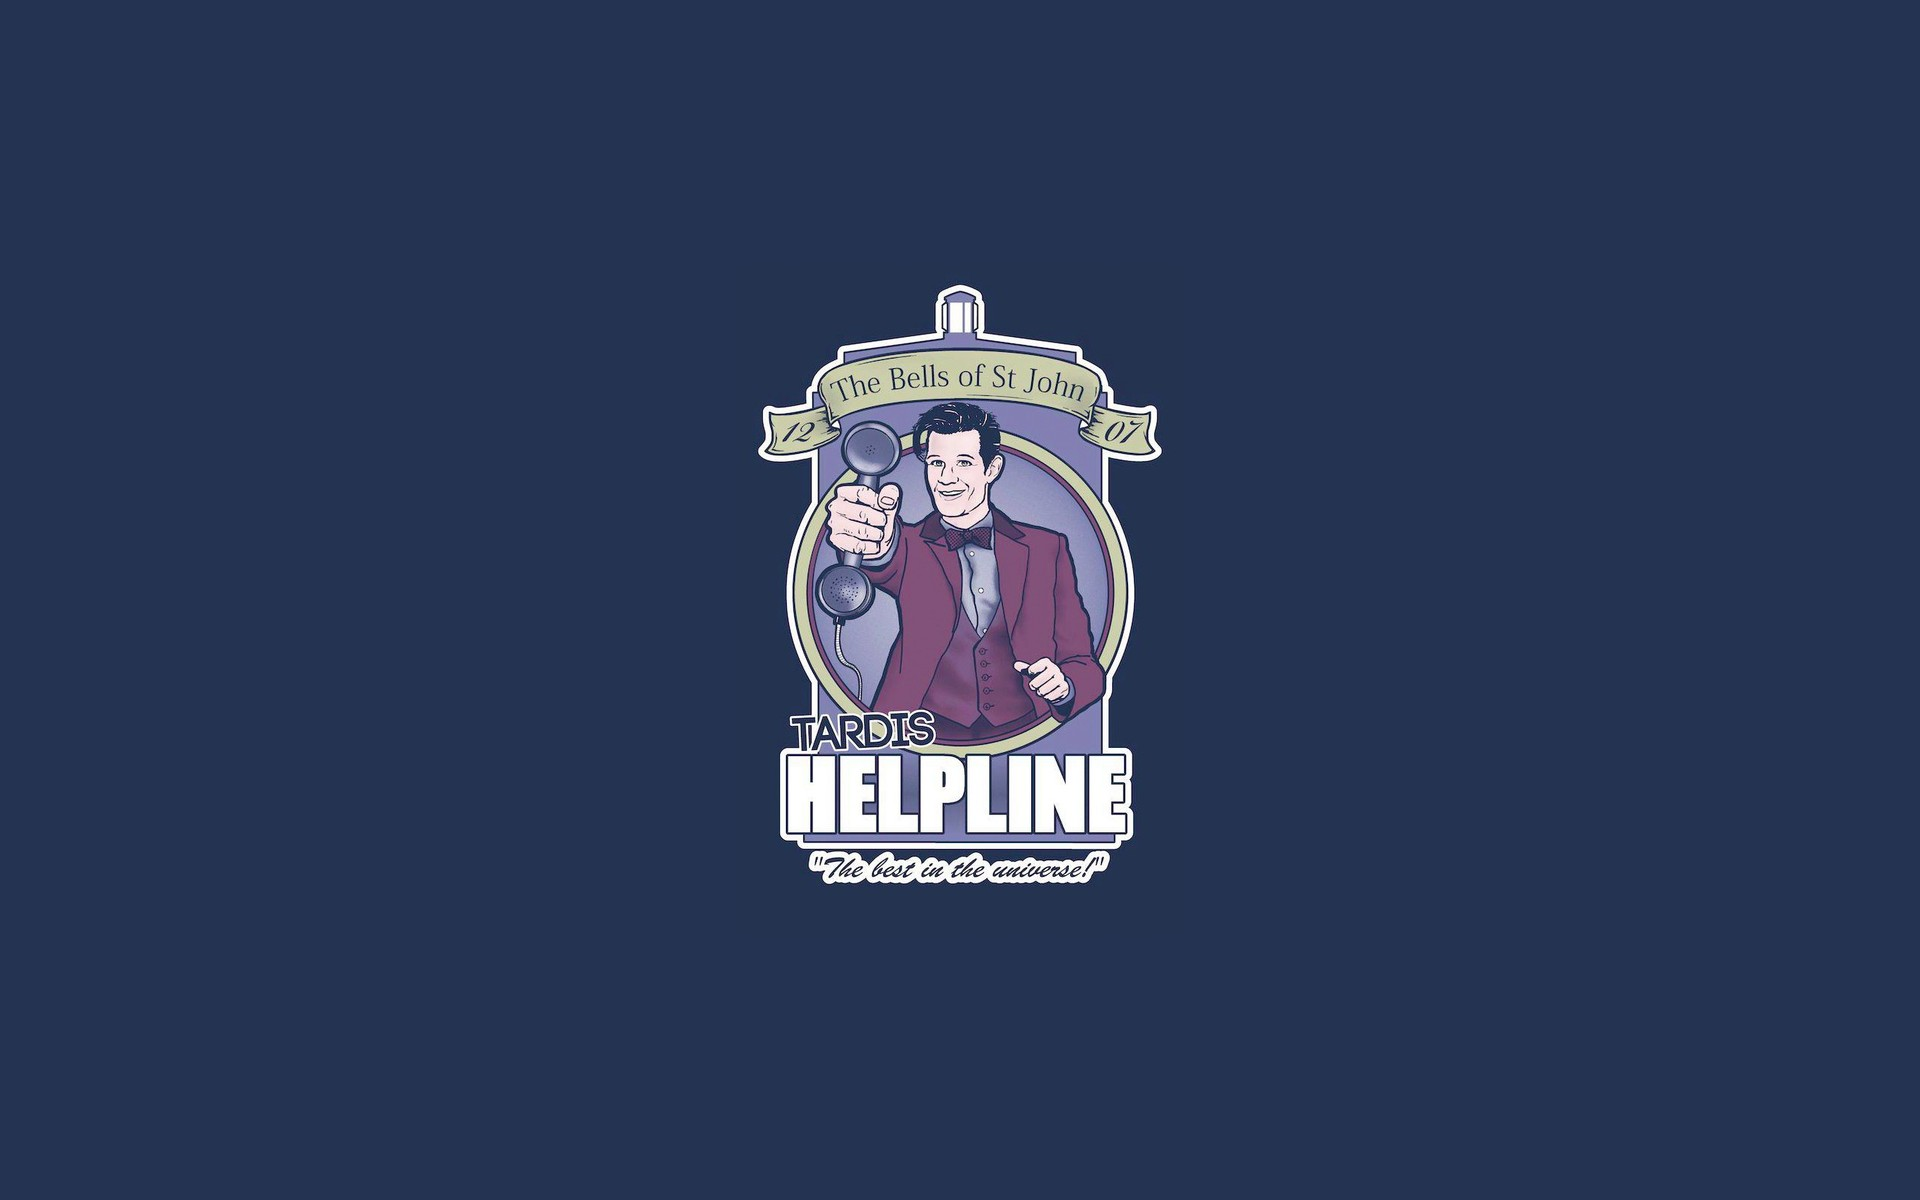 TARDIS Helpline - Doctor Who